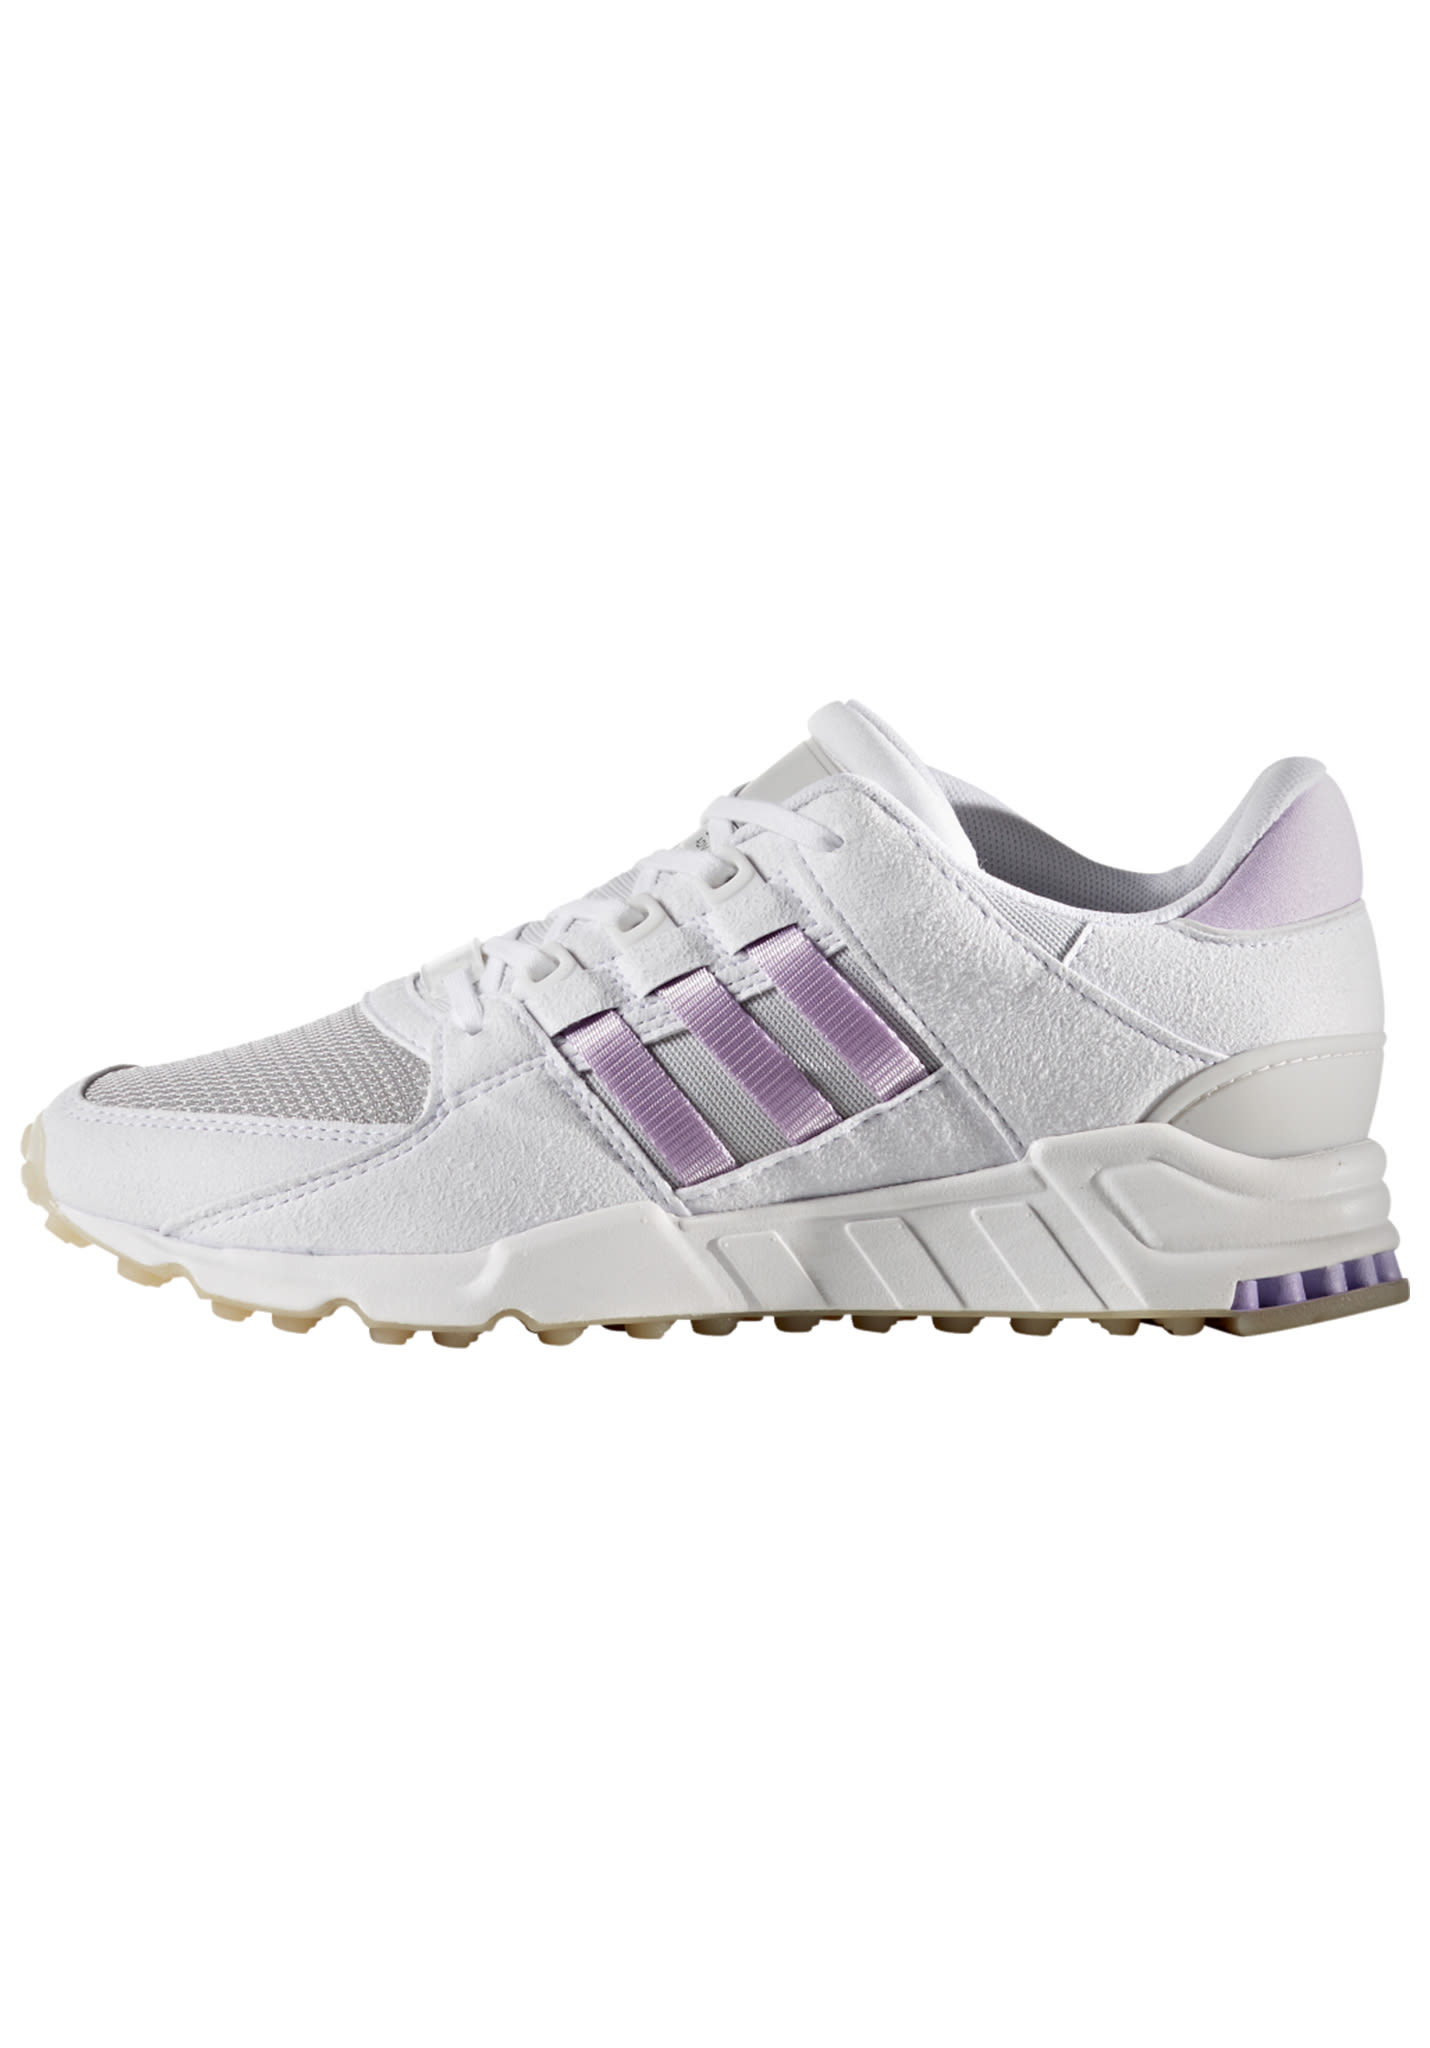 finest selection a4e64 5beb9 ADIDAS ORIGINALS EQT Support RF - Sneakers for Women - White - Planet Sports